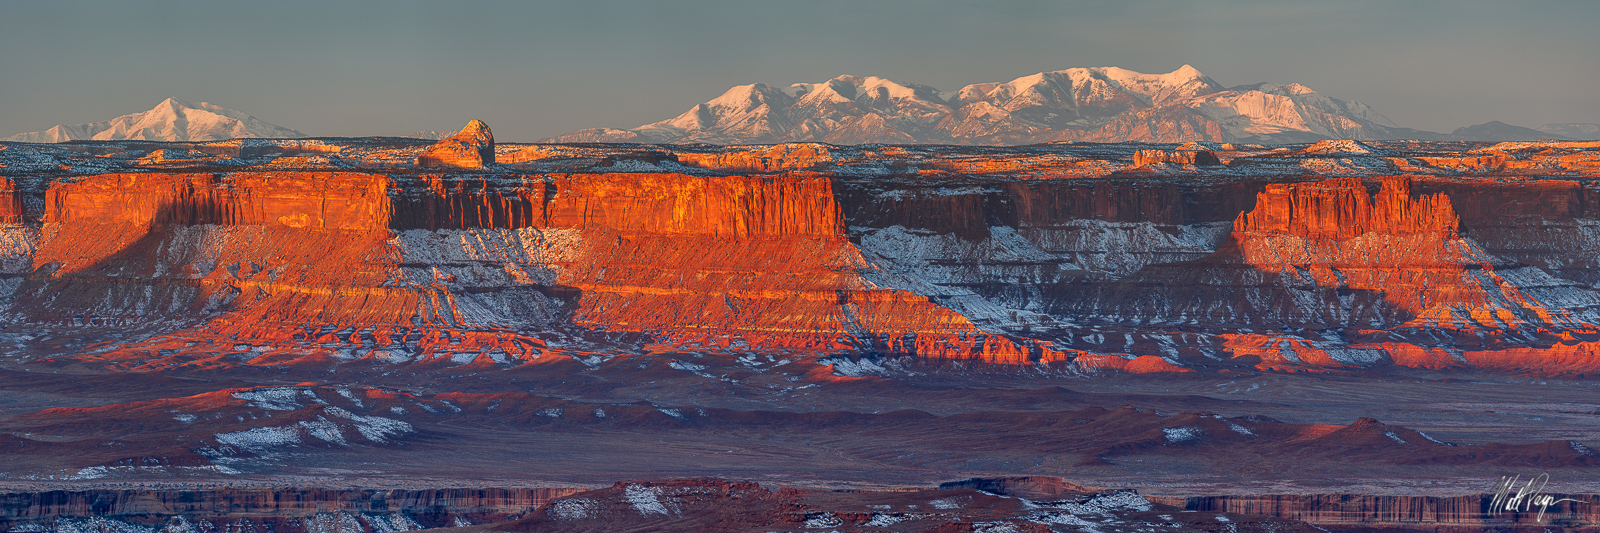 Canyonlands, Canyonlands National Park, Canyons, Cleopatras Chair, Grand Scenic, Green River Overlook, Island in the Sky, Mountains, Snow, Sunrise, Utah, Winter, desert, Landscape Photography, photo